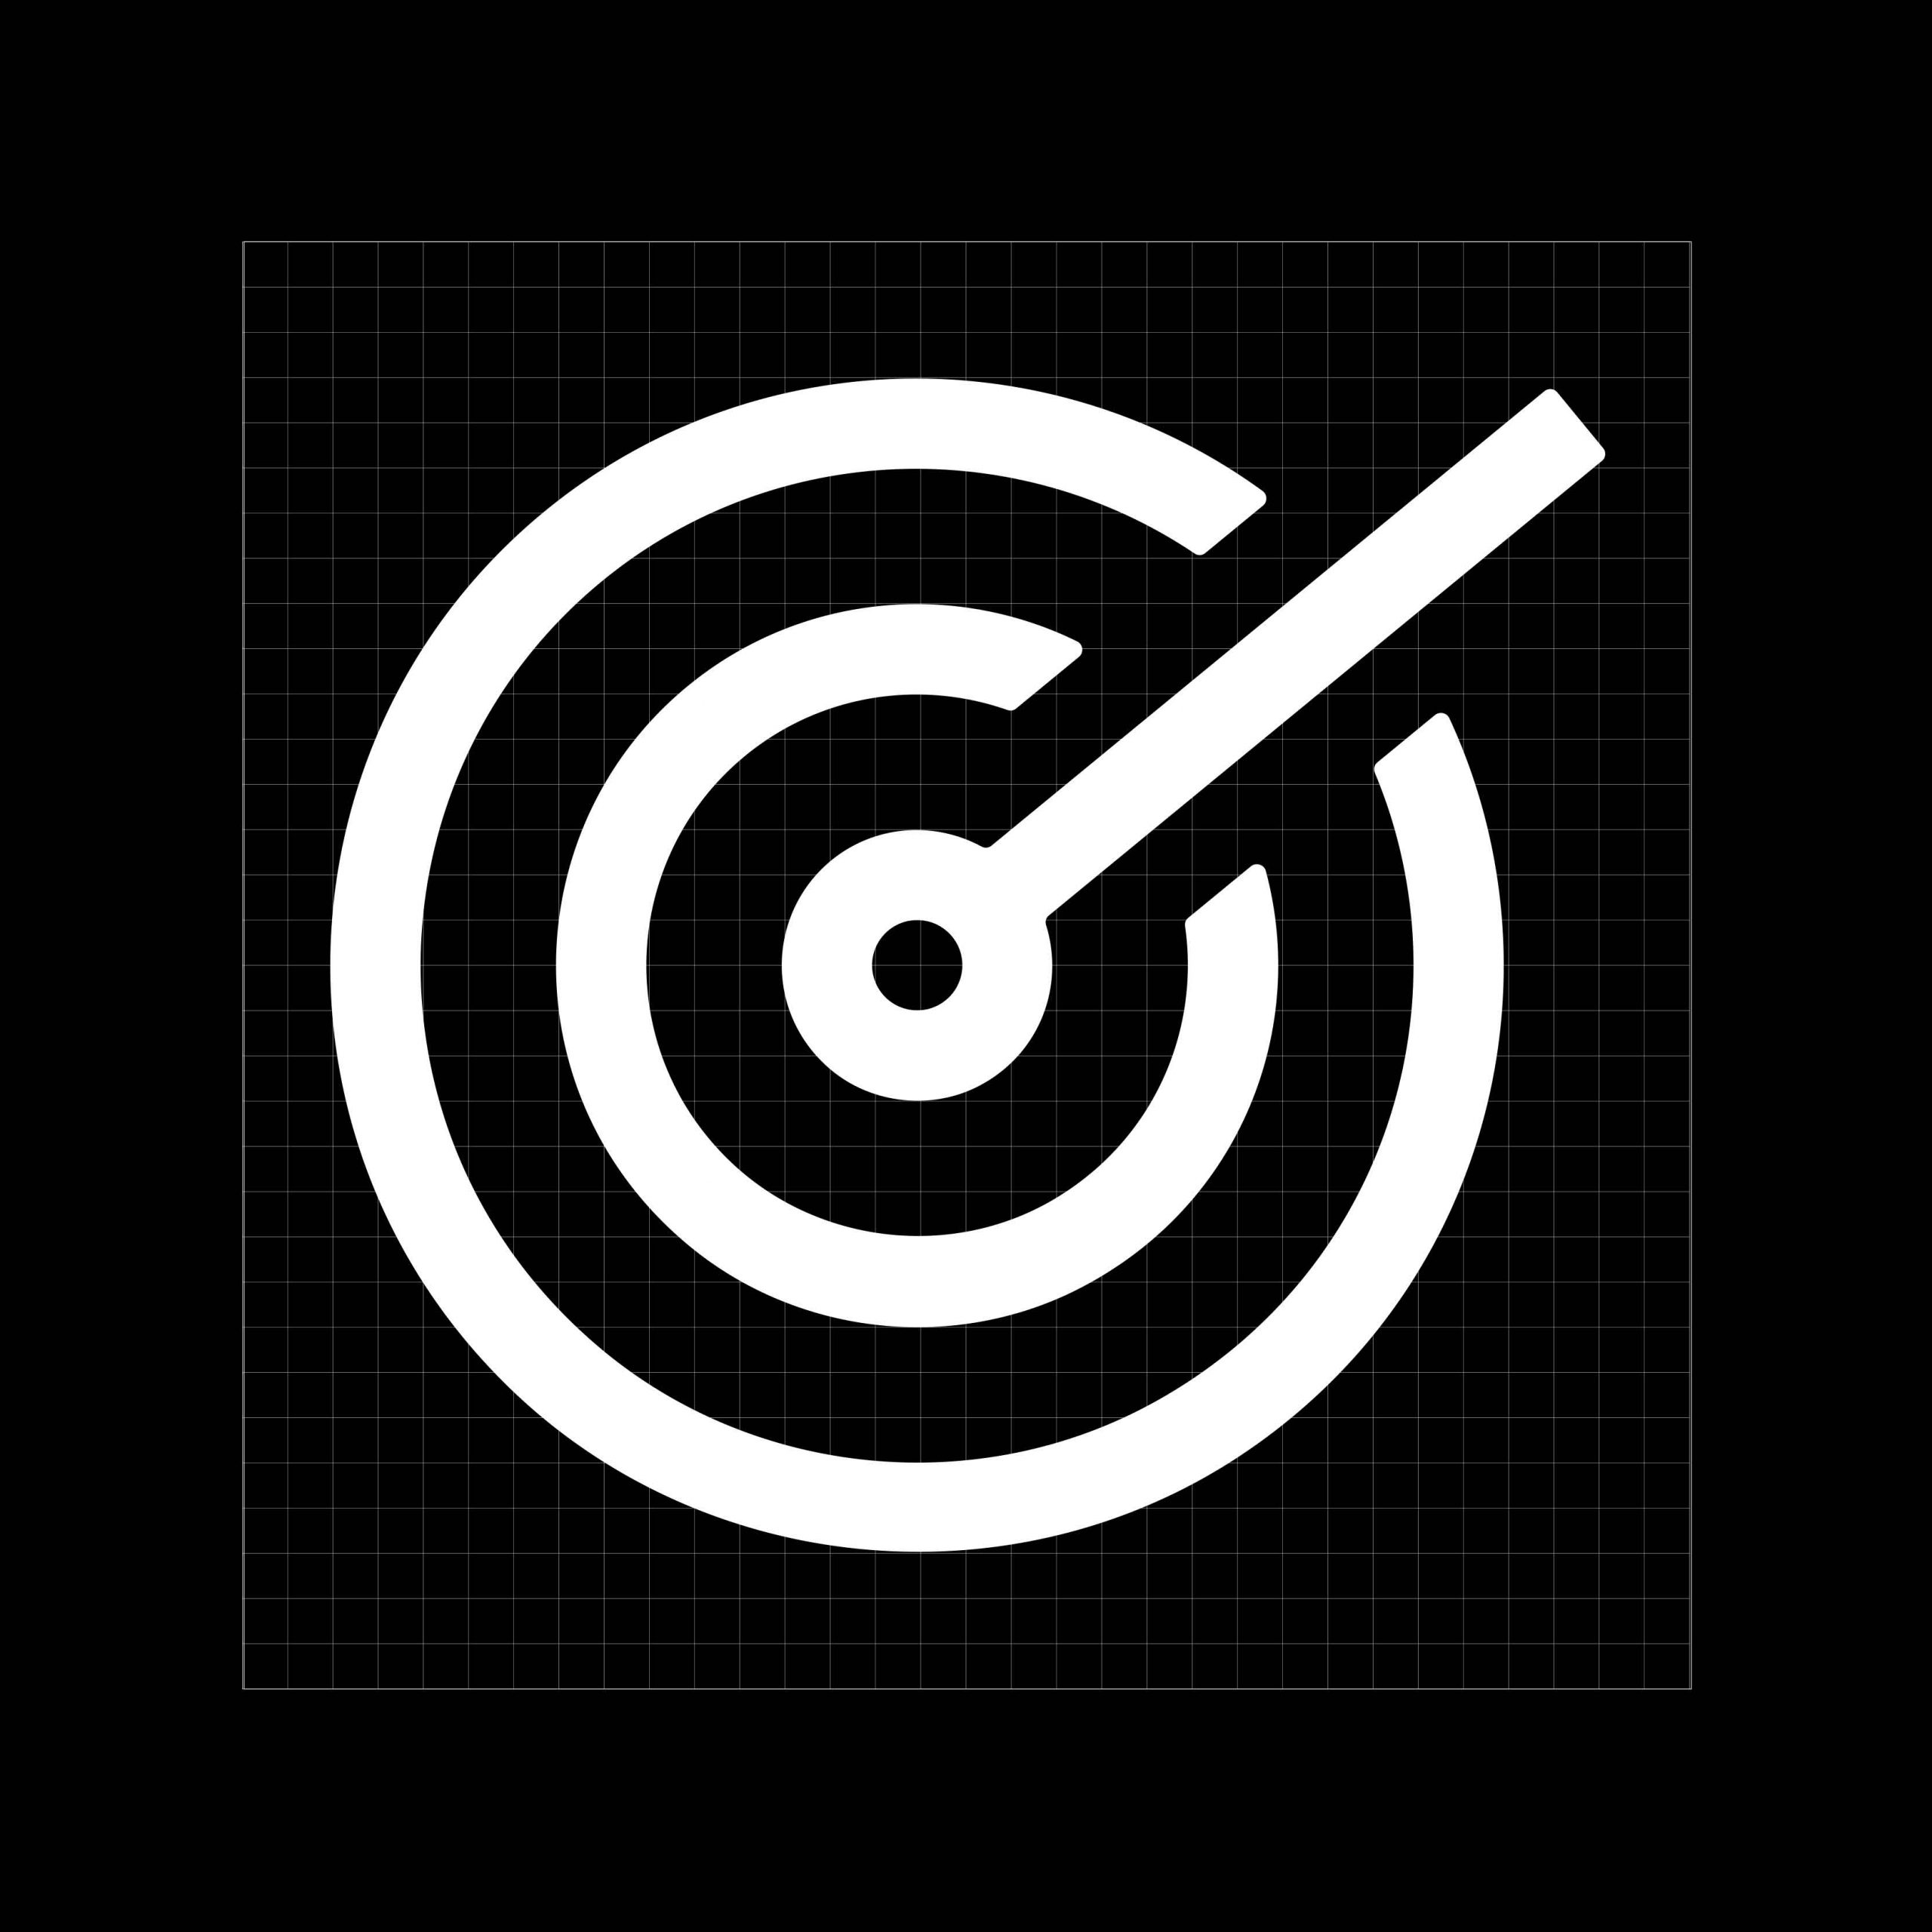 icon-target